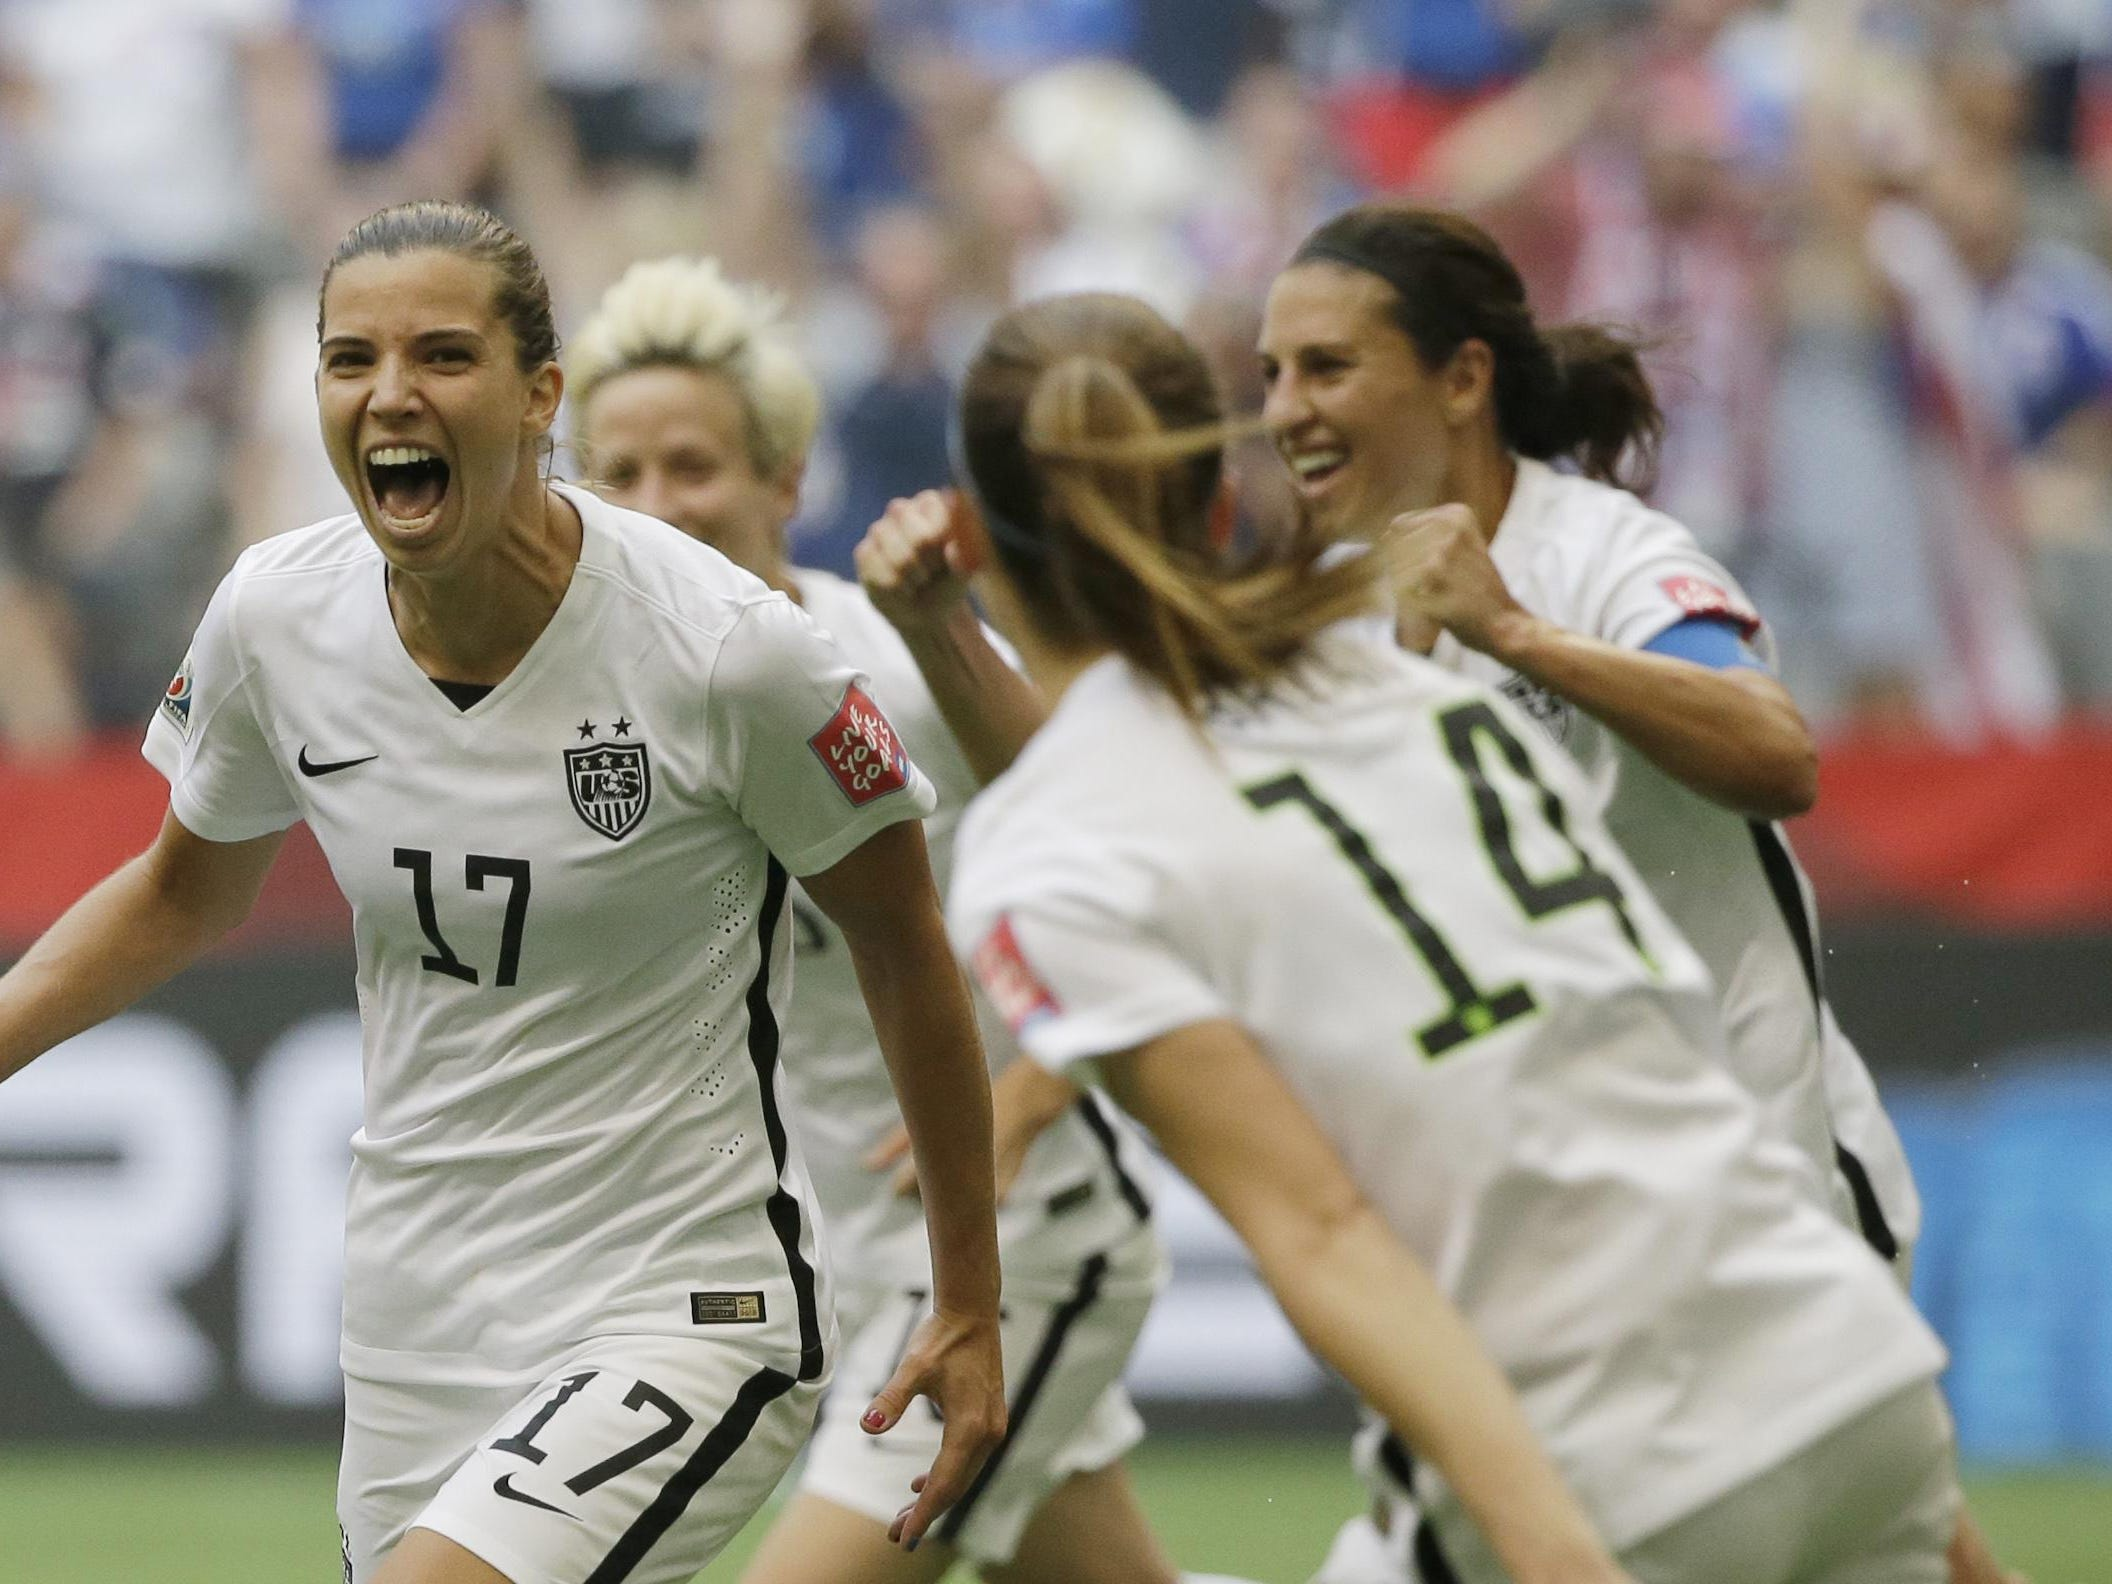 United States' Tobin Heath, left, celebrates after she scored a goal against Japan during the second half of the FIFA Women's World Cup soccer championship in Vancouver, British Columbia, Canada, Sunday, July 5, 2015.